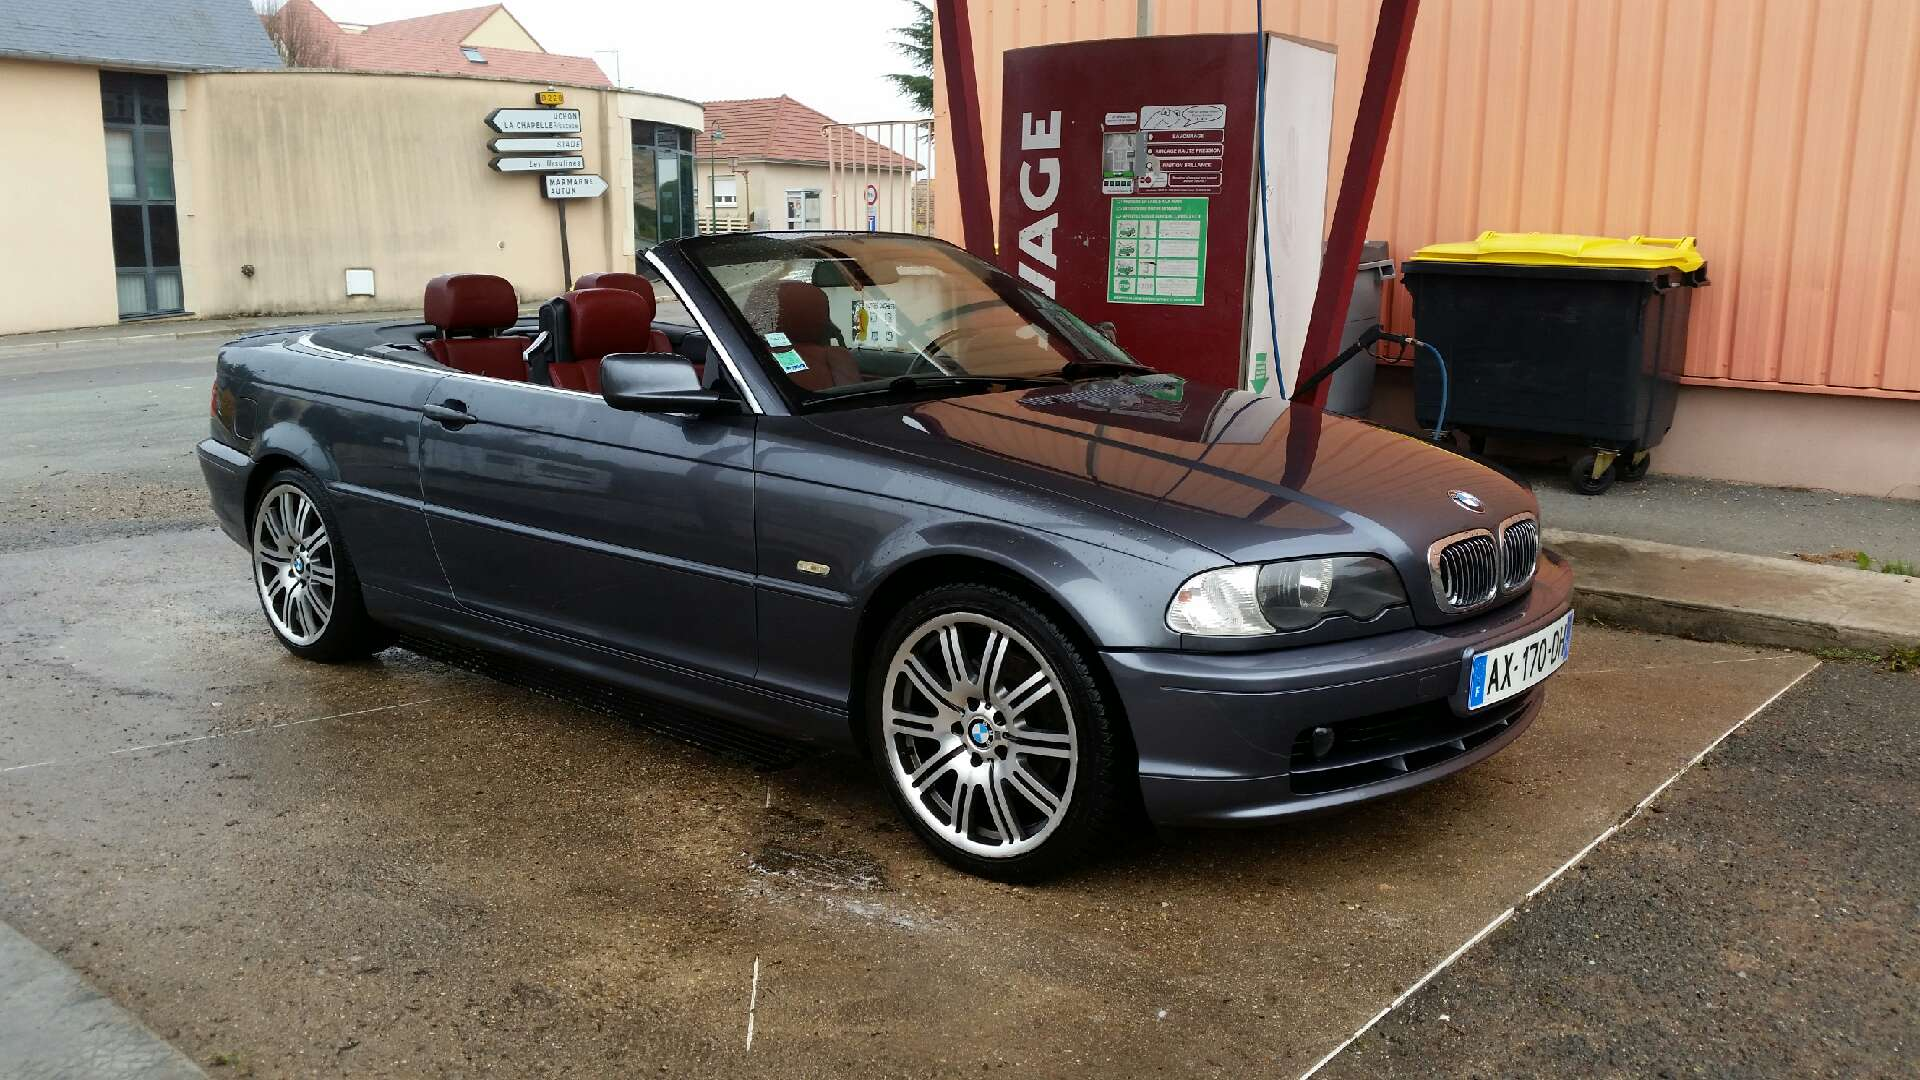 pr sentation ma bmw 320 ci e46 cab sur le forum automobiles 10 12 2014 20 57 36. Black Bedroom Furniture Sets. Home Design Ideas